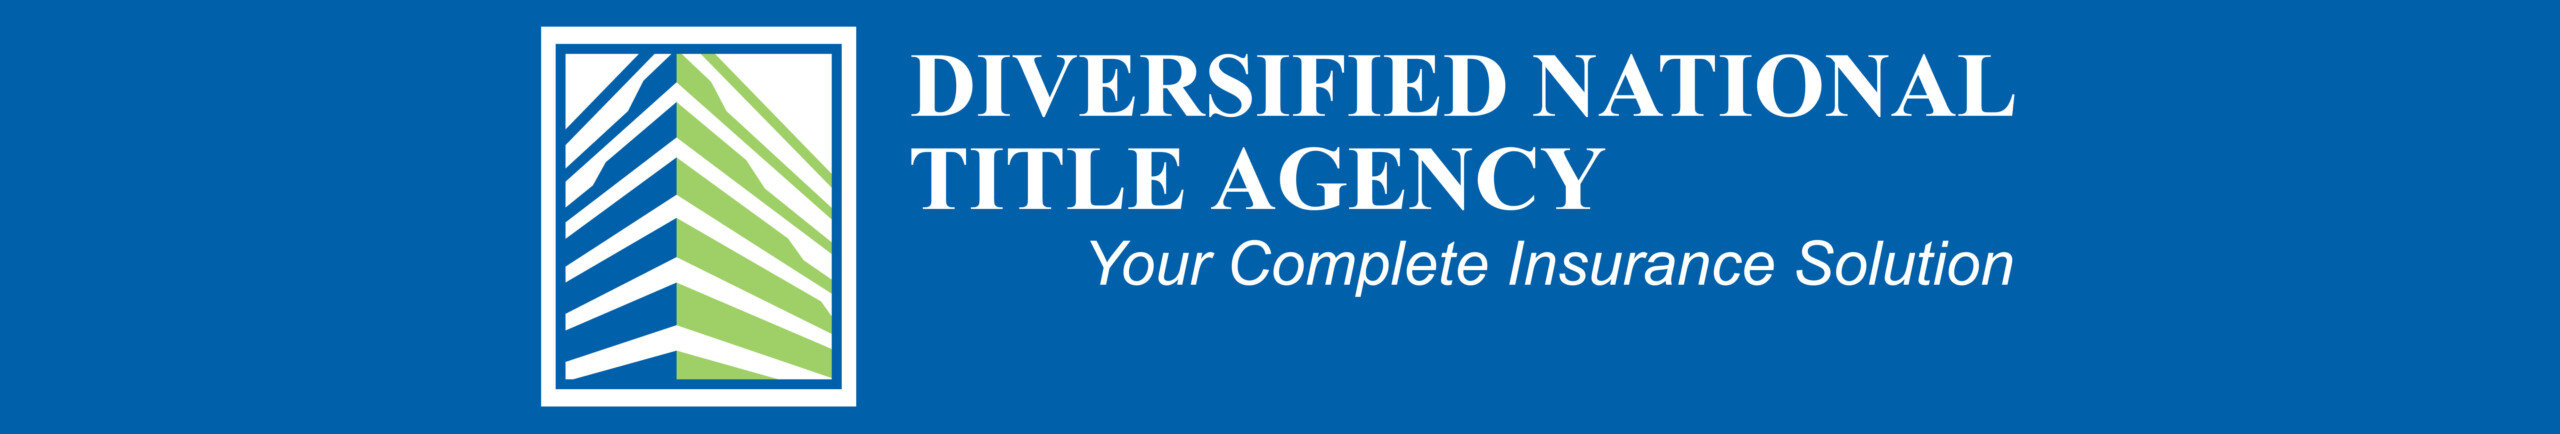 Diversified National Title Agency